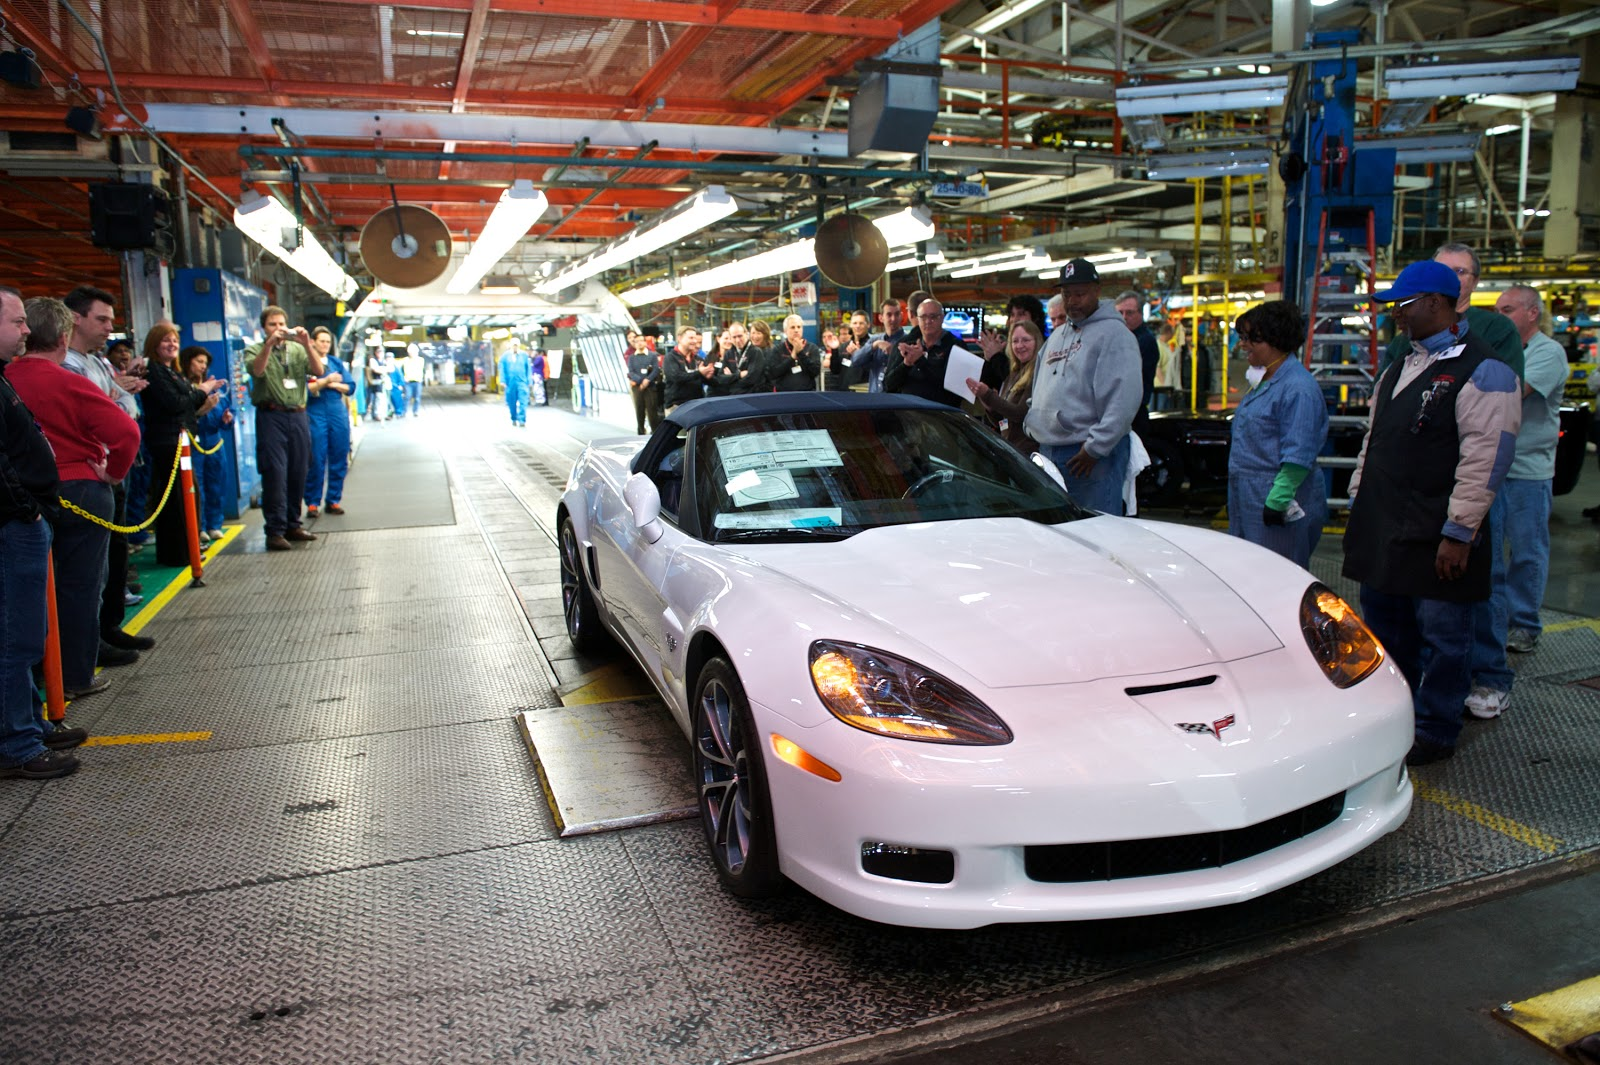 National Corvette Museum >> National Corvette Museum: Last C6 Corvette Rolls off GM Bowling Green Assembly Plant Line